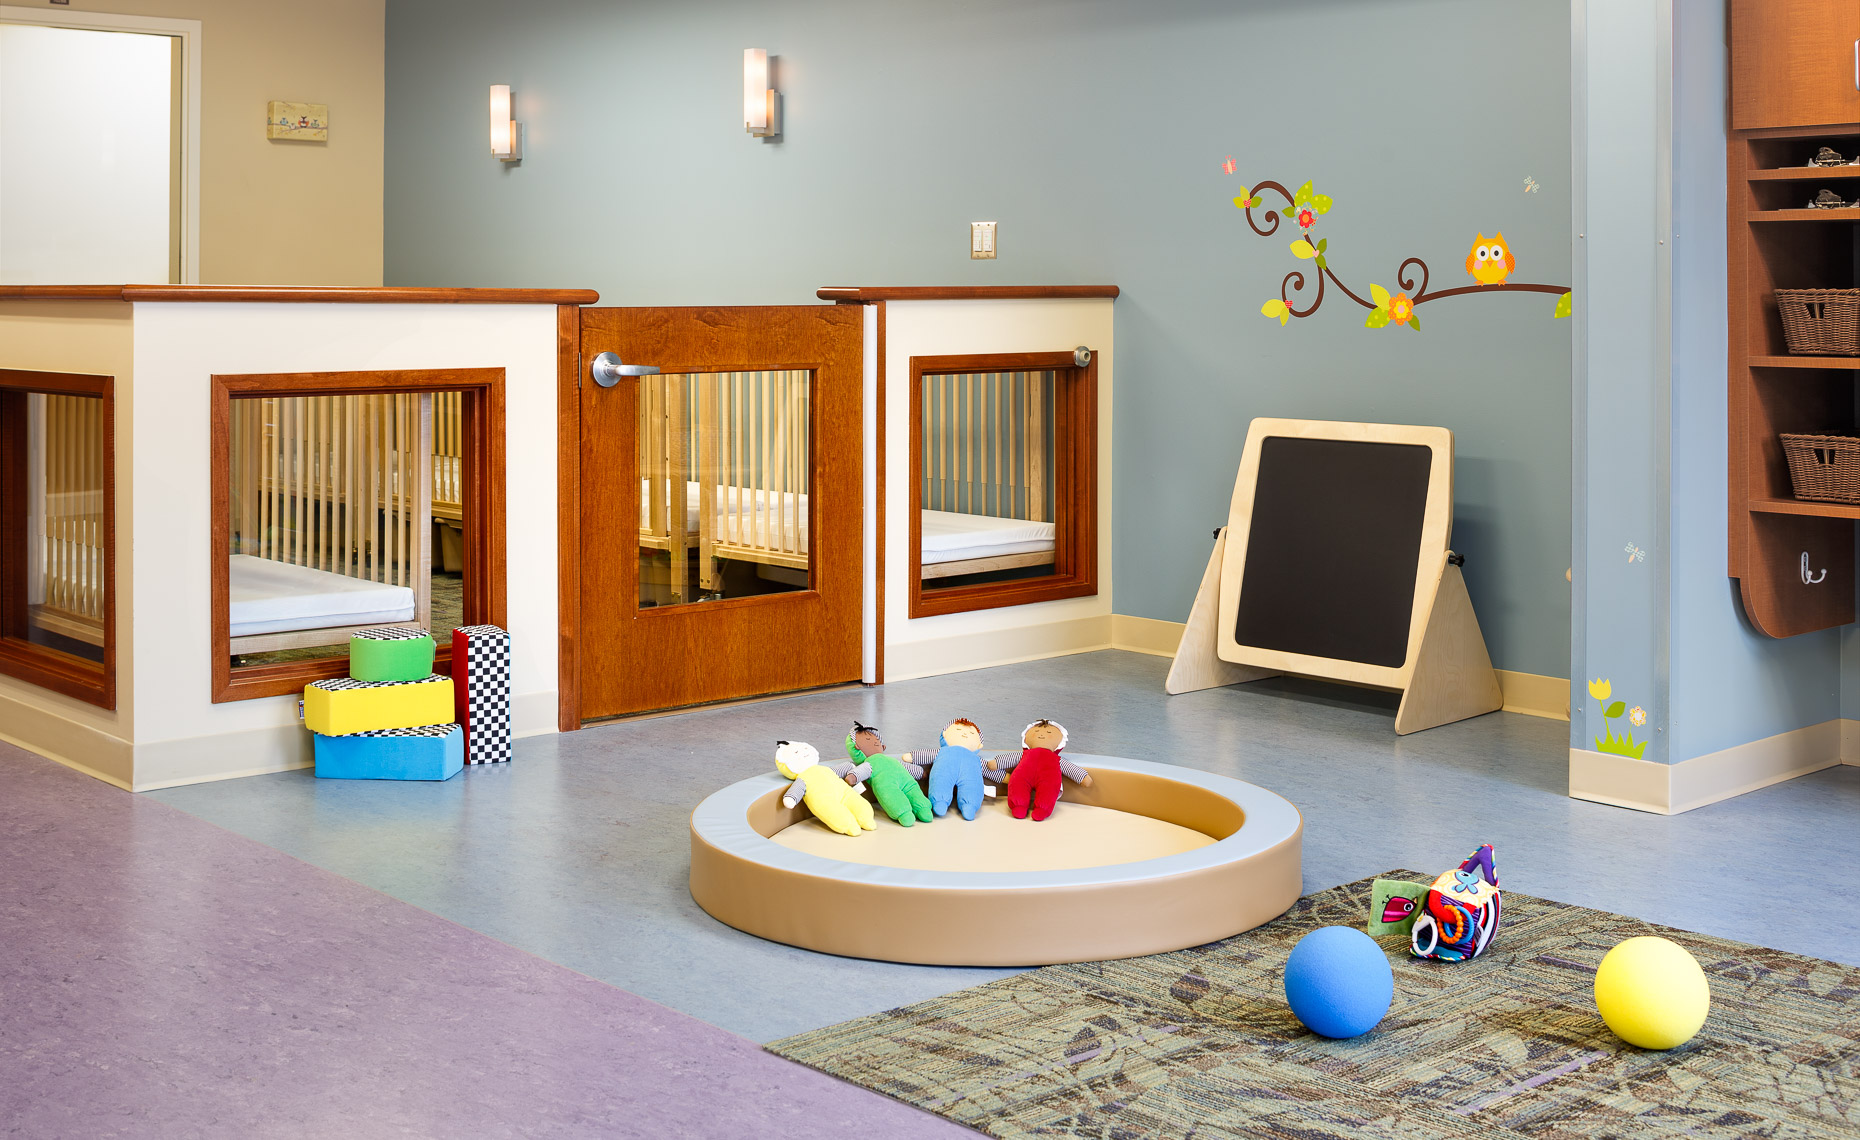 Virginia Hamrick Photography - Infant Room at UPG Childcare Facility Charlottesville VA